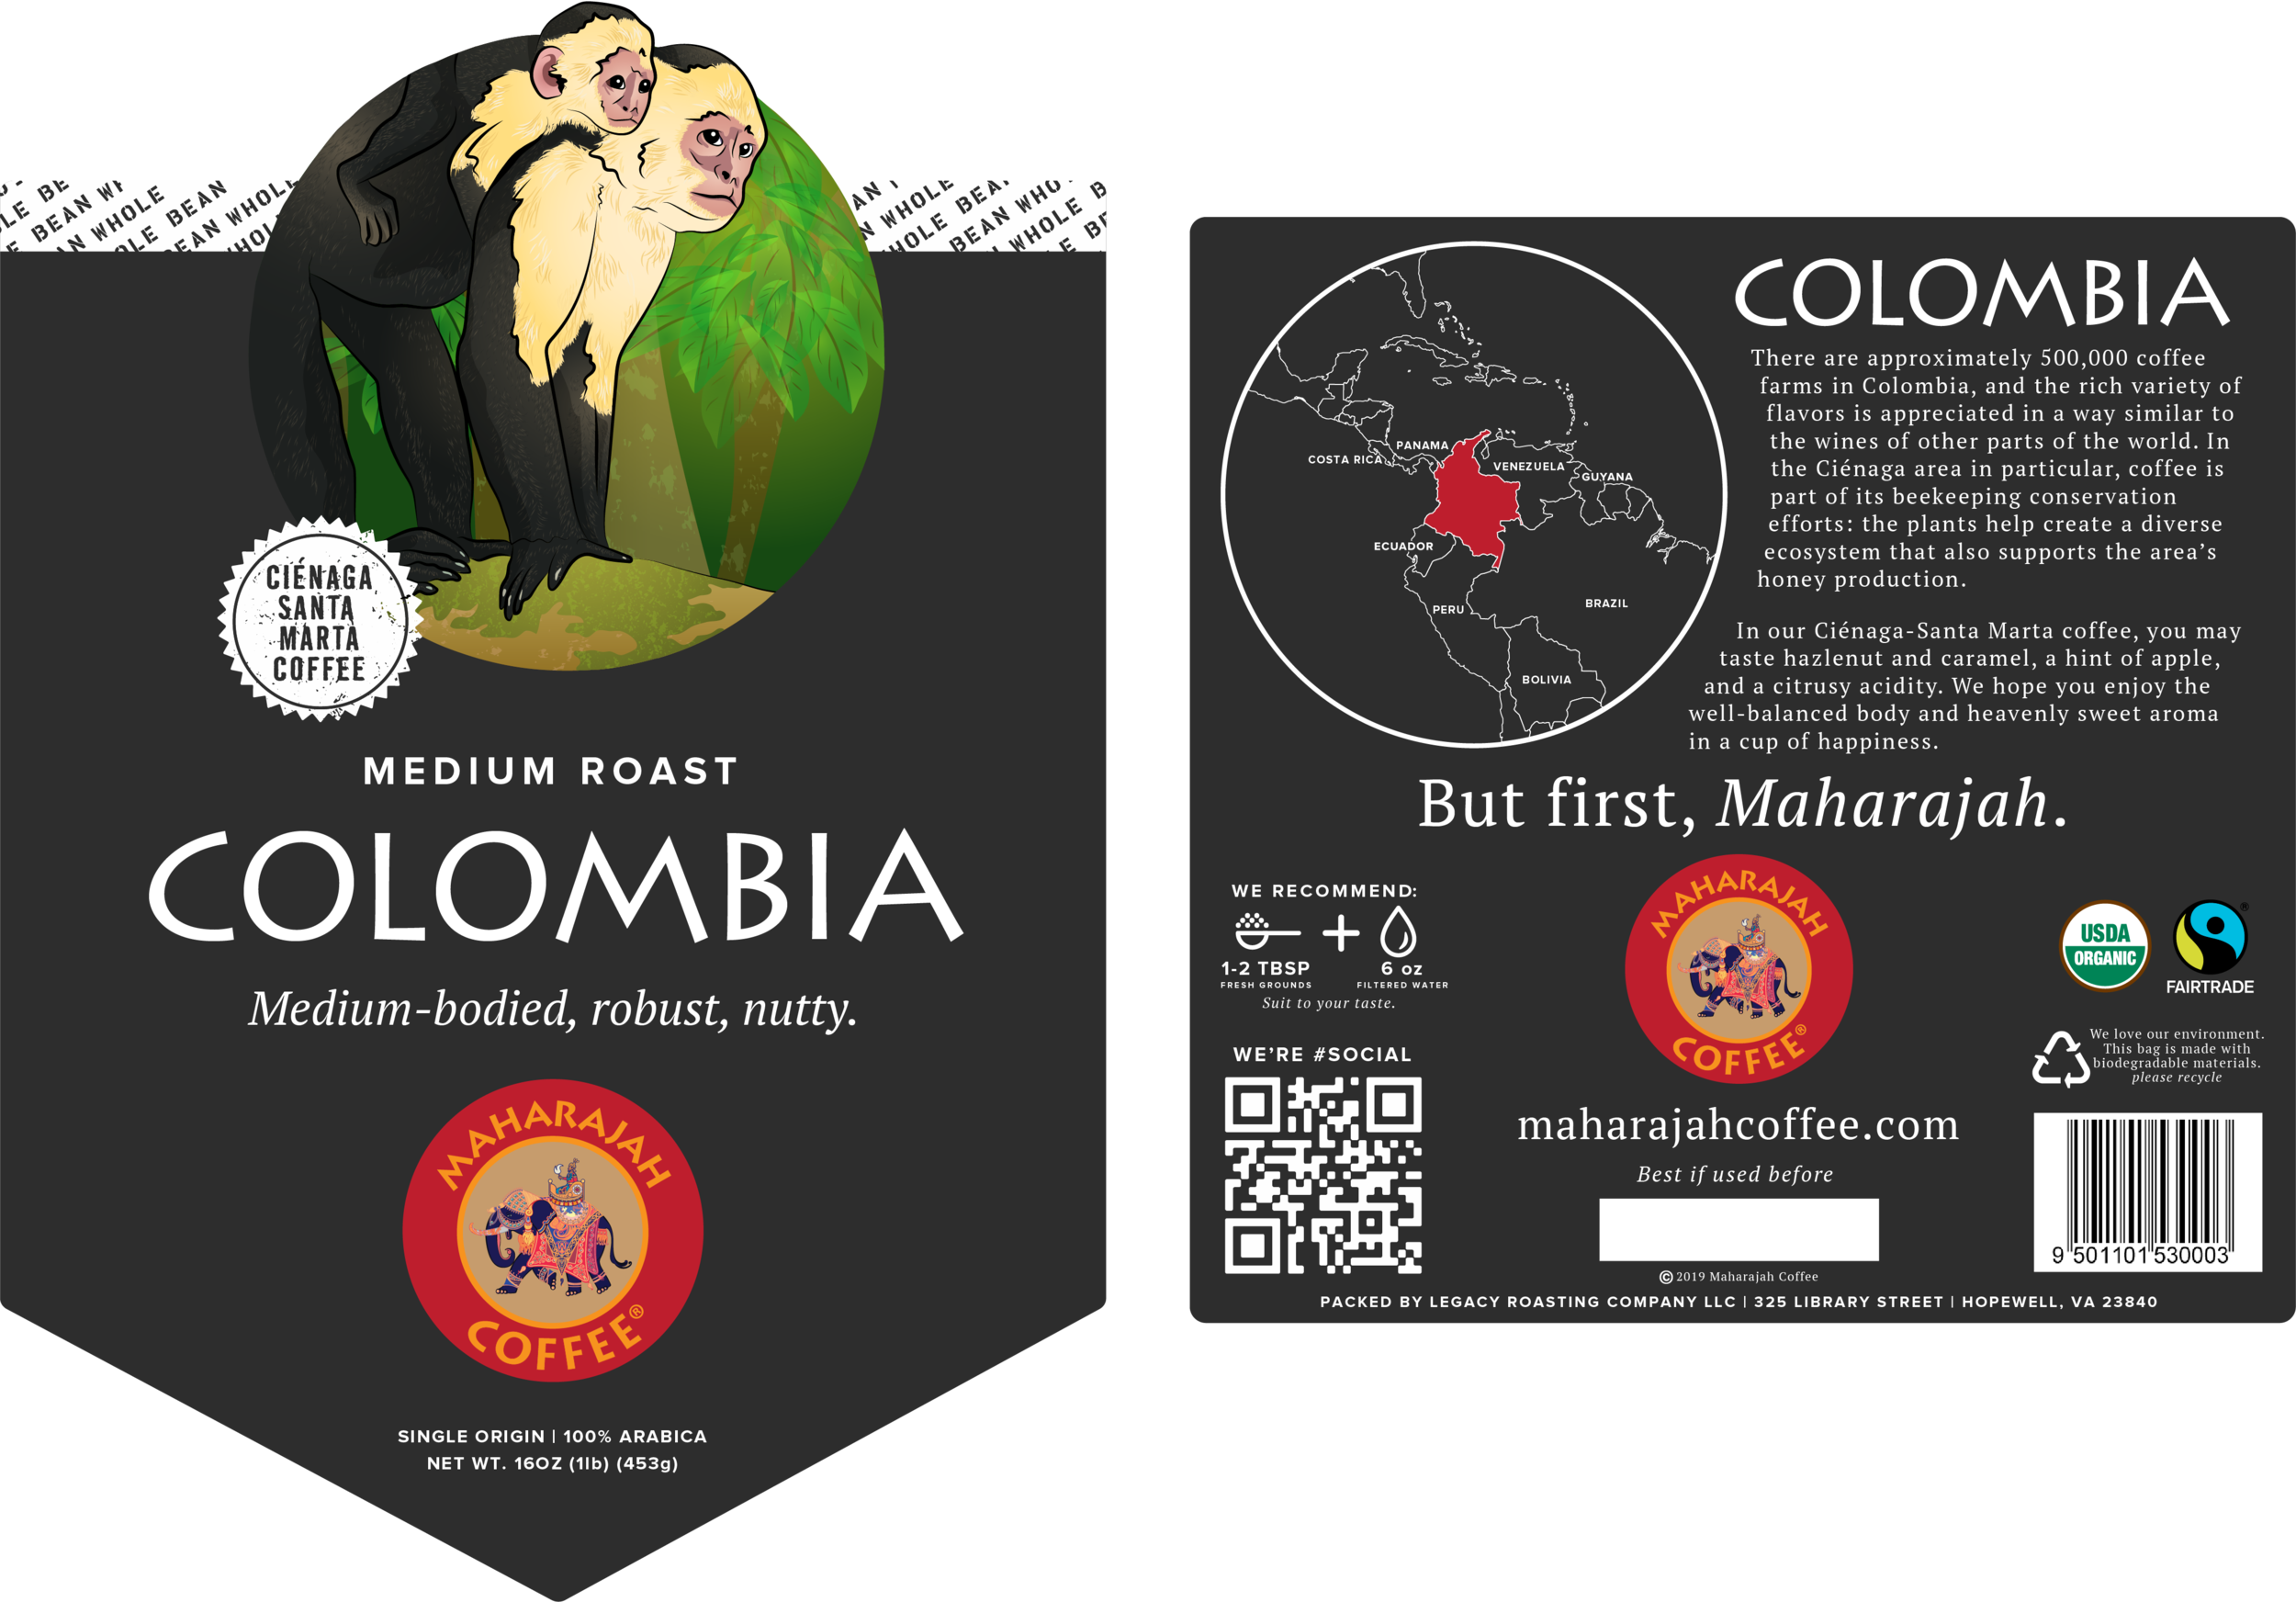 Colombia - Whole.png